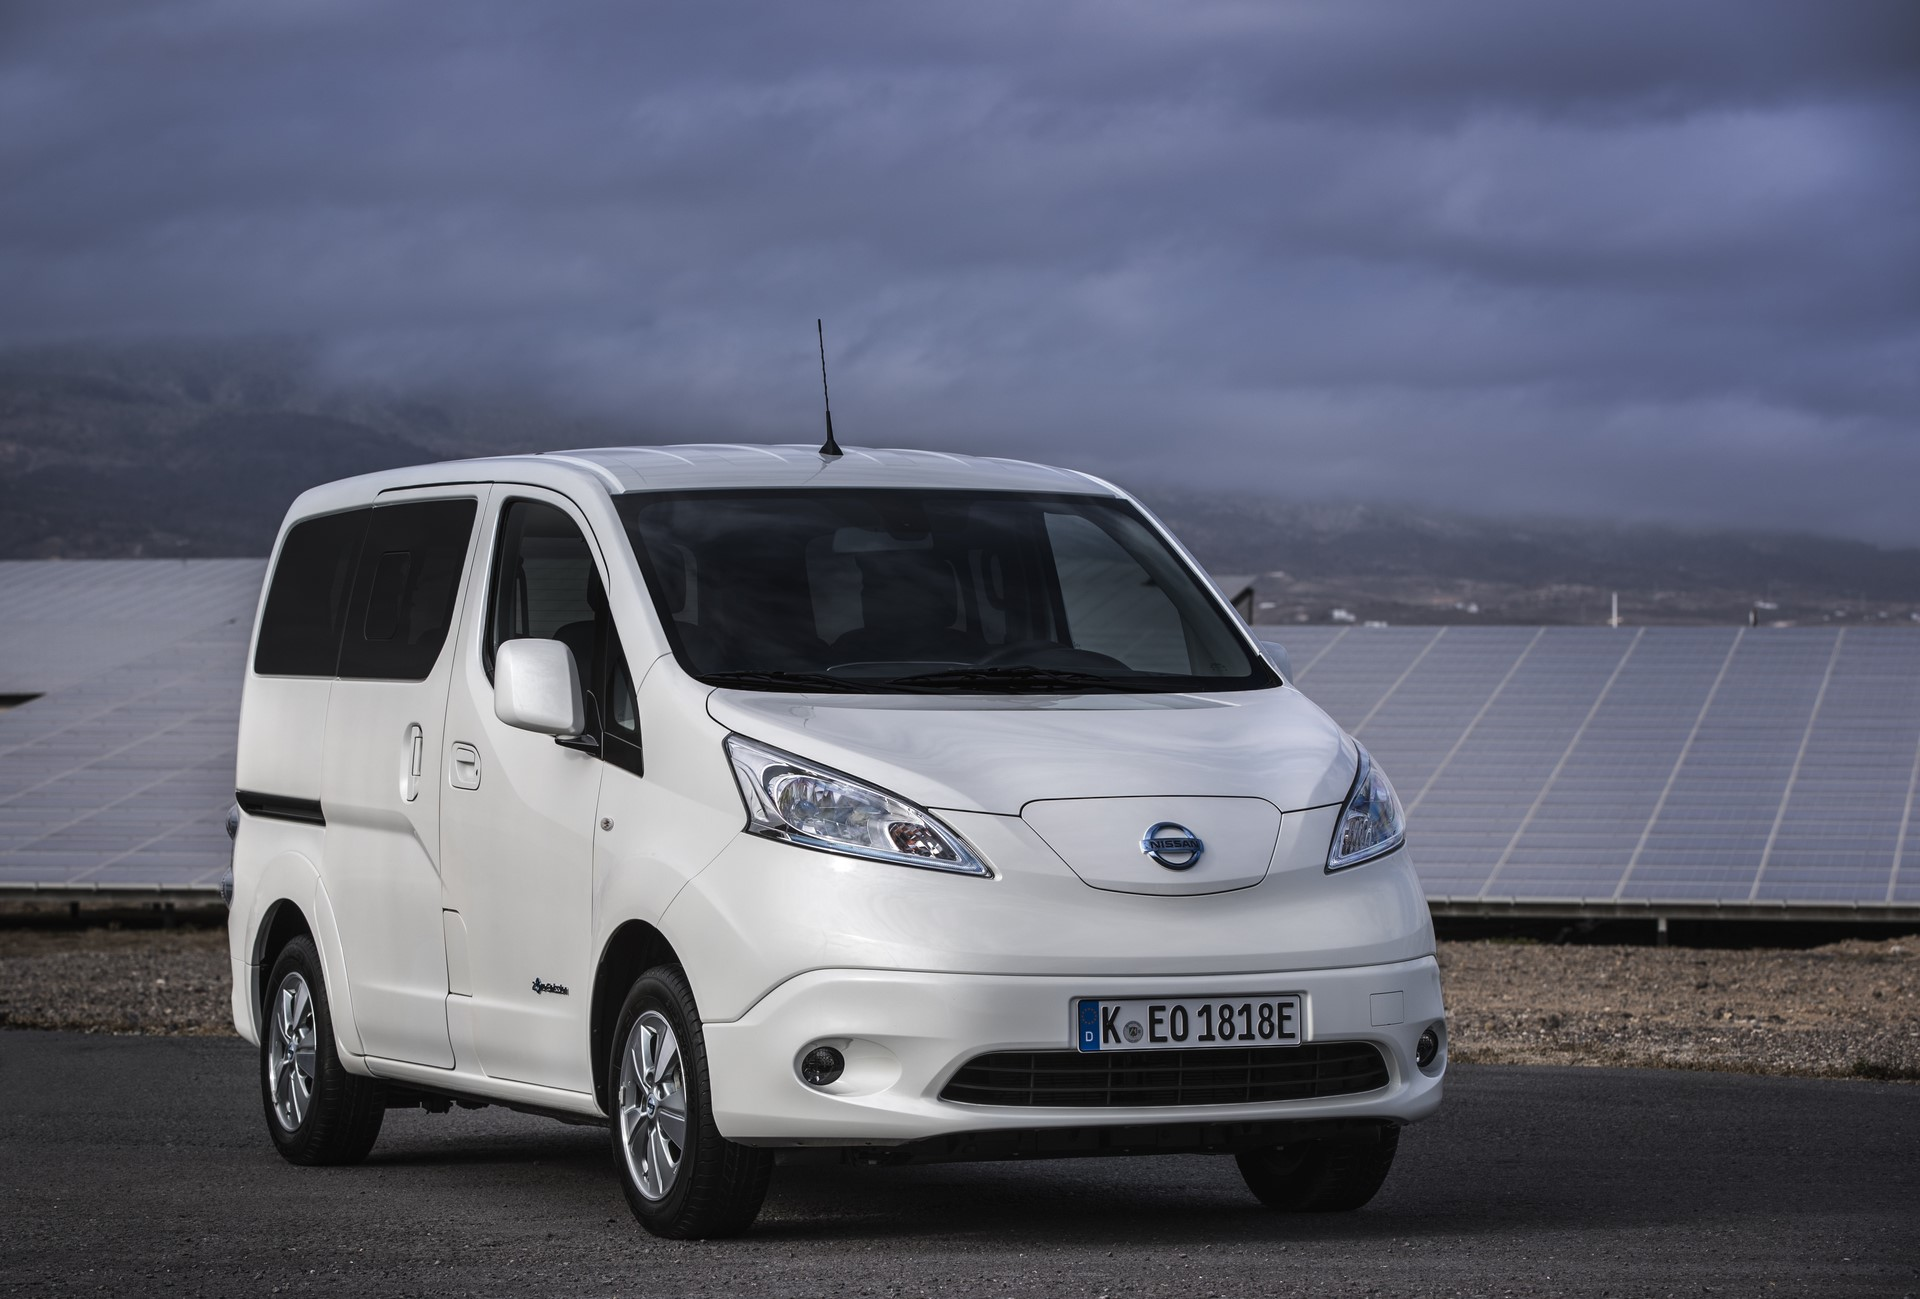 The upgraded Nissan e-NV200: The LCV market game changer. Zero-emissions van, now goes further than ever on a single charge